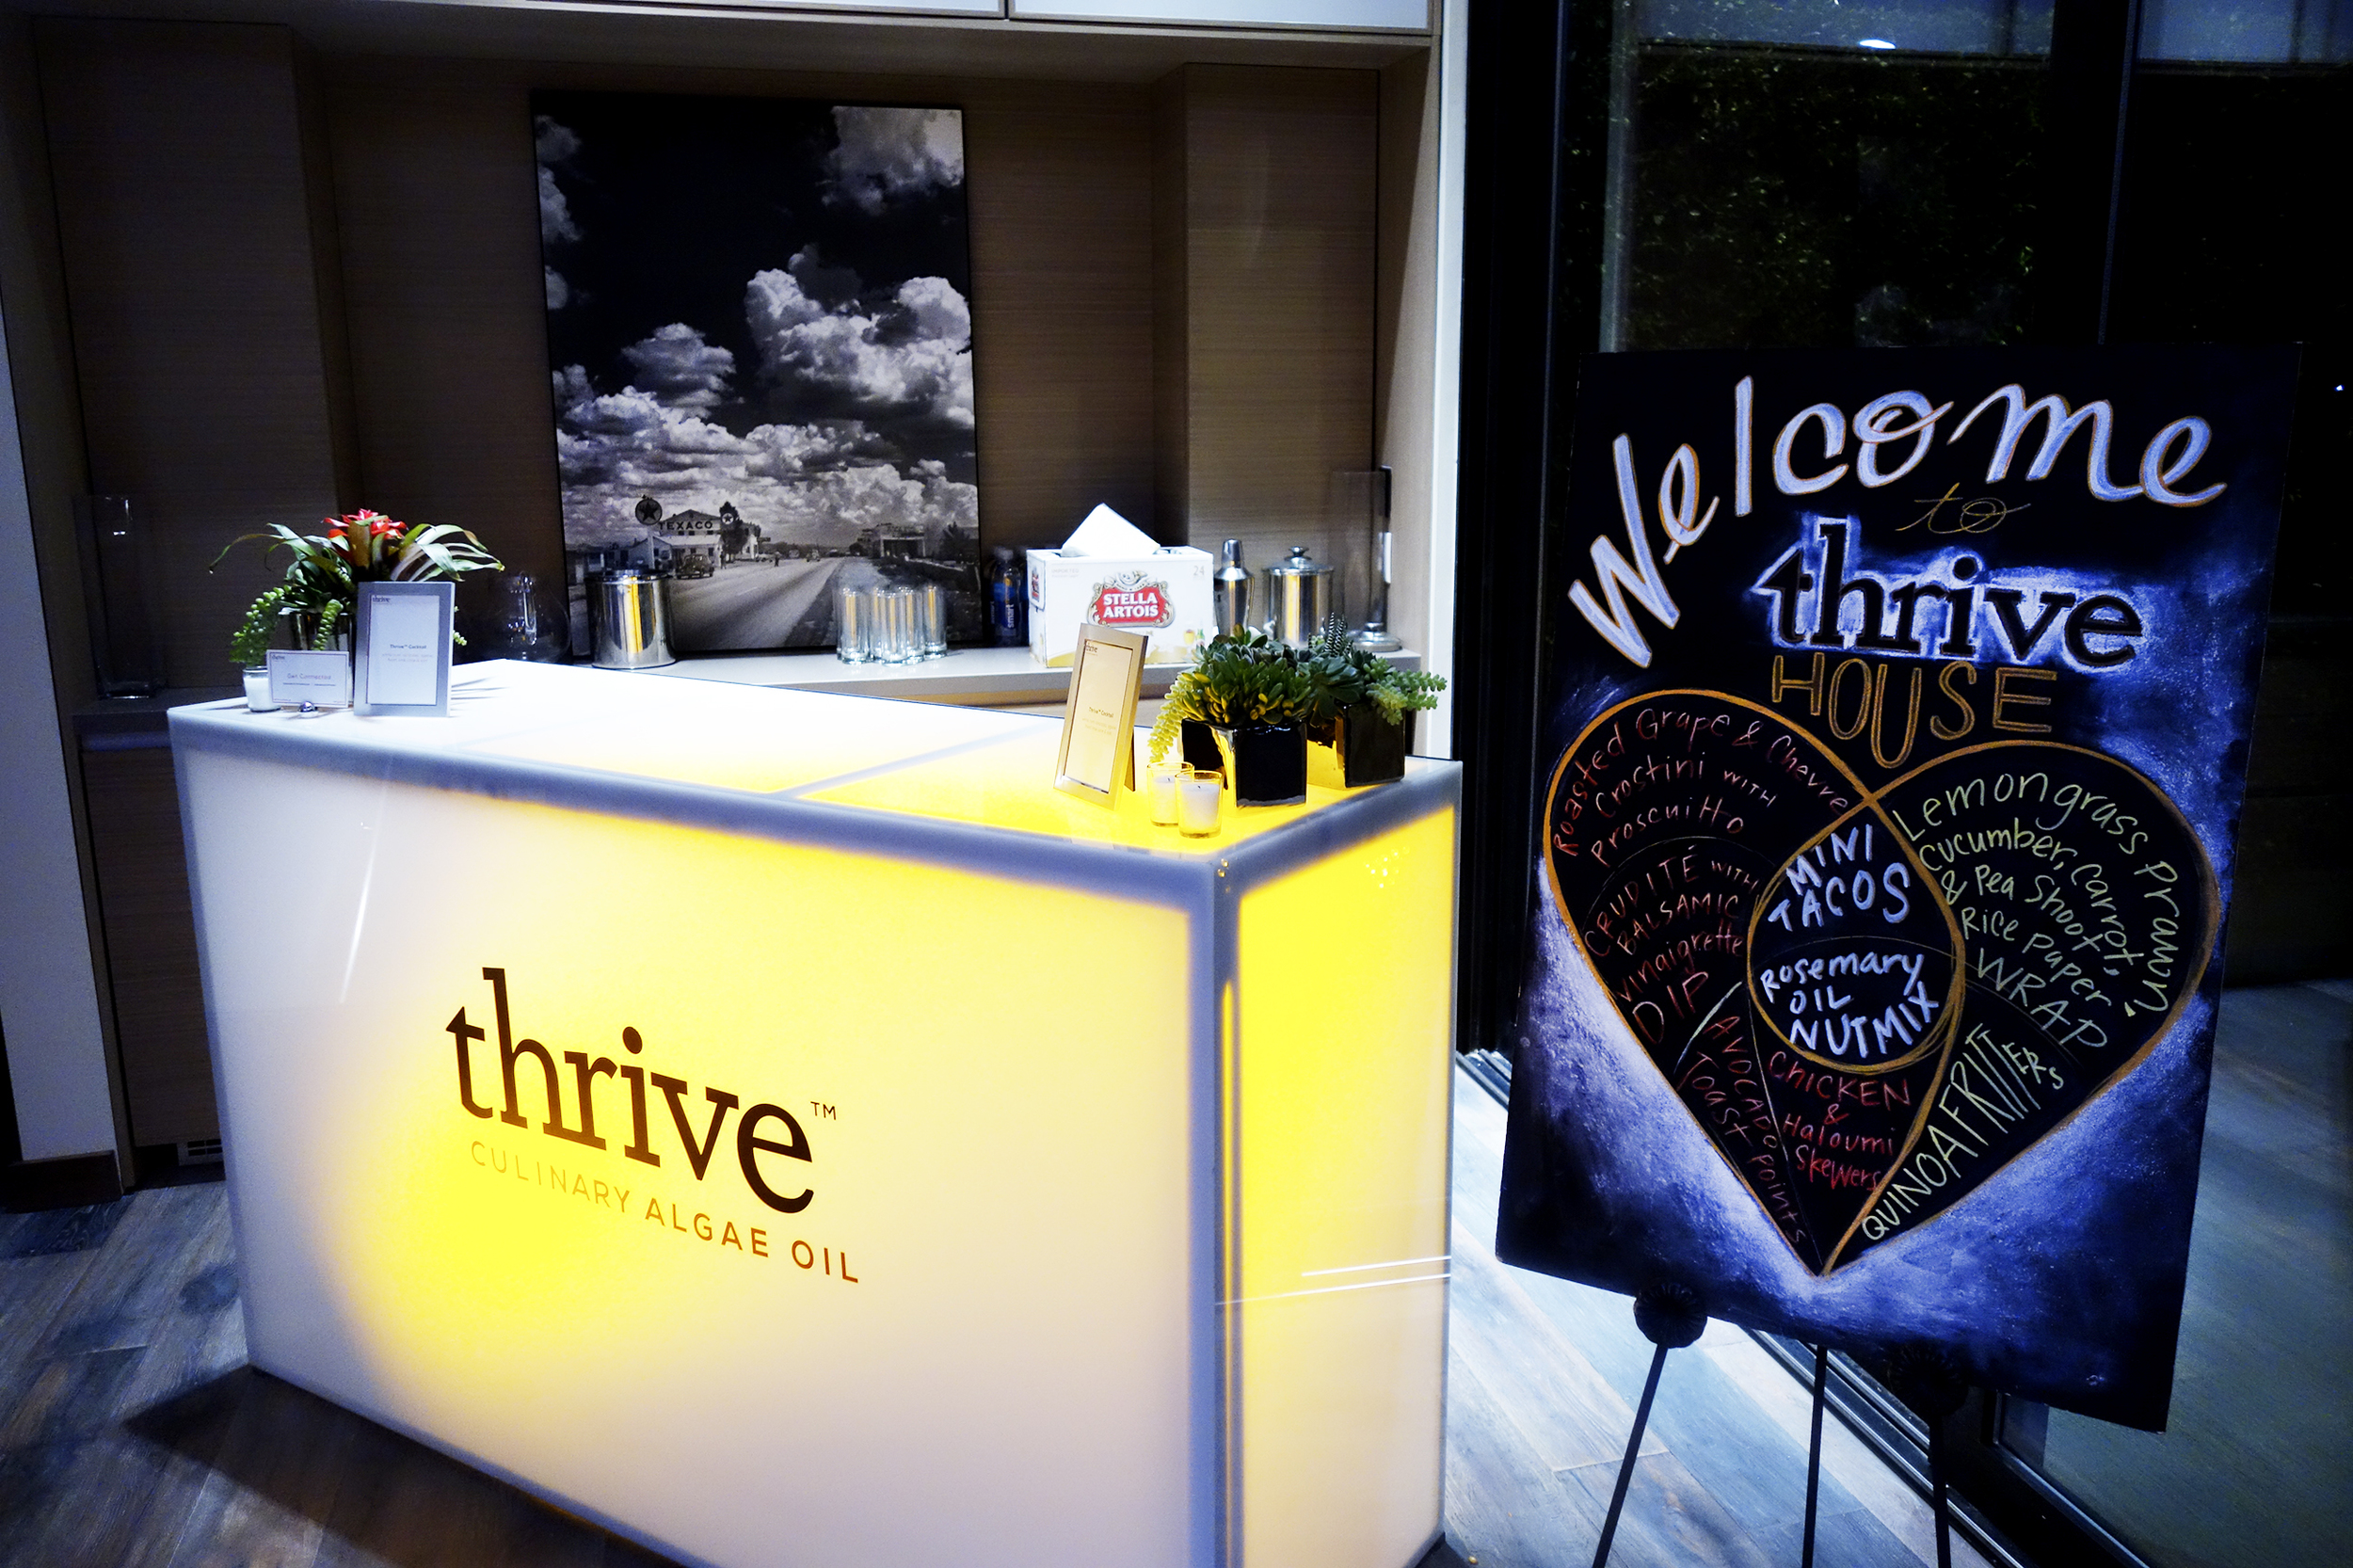 Thrive Bar